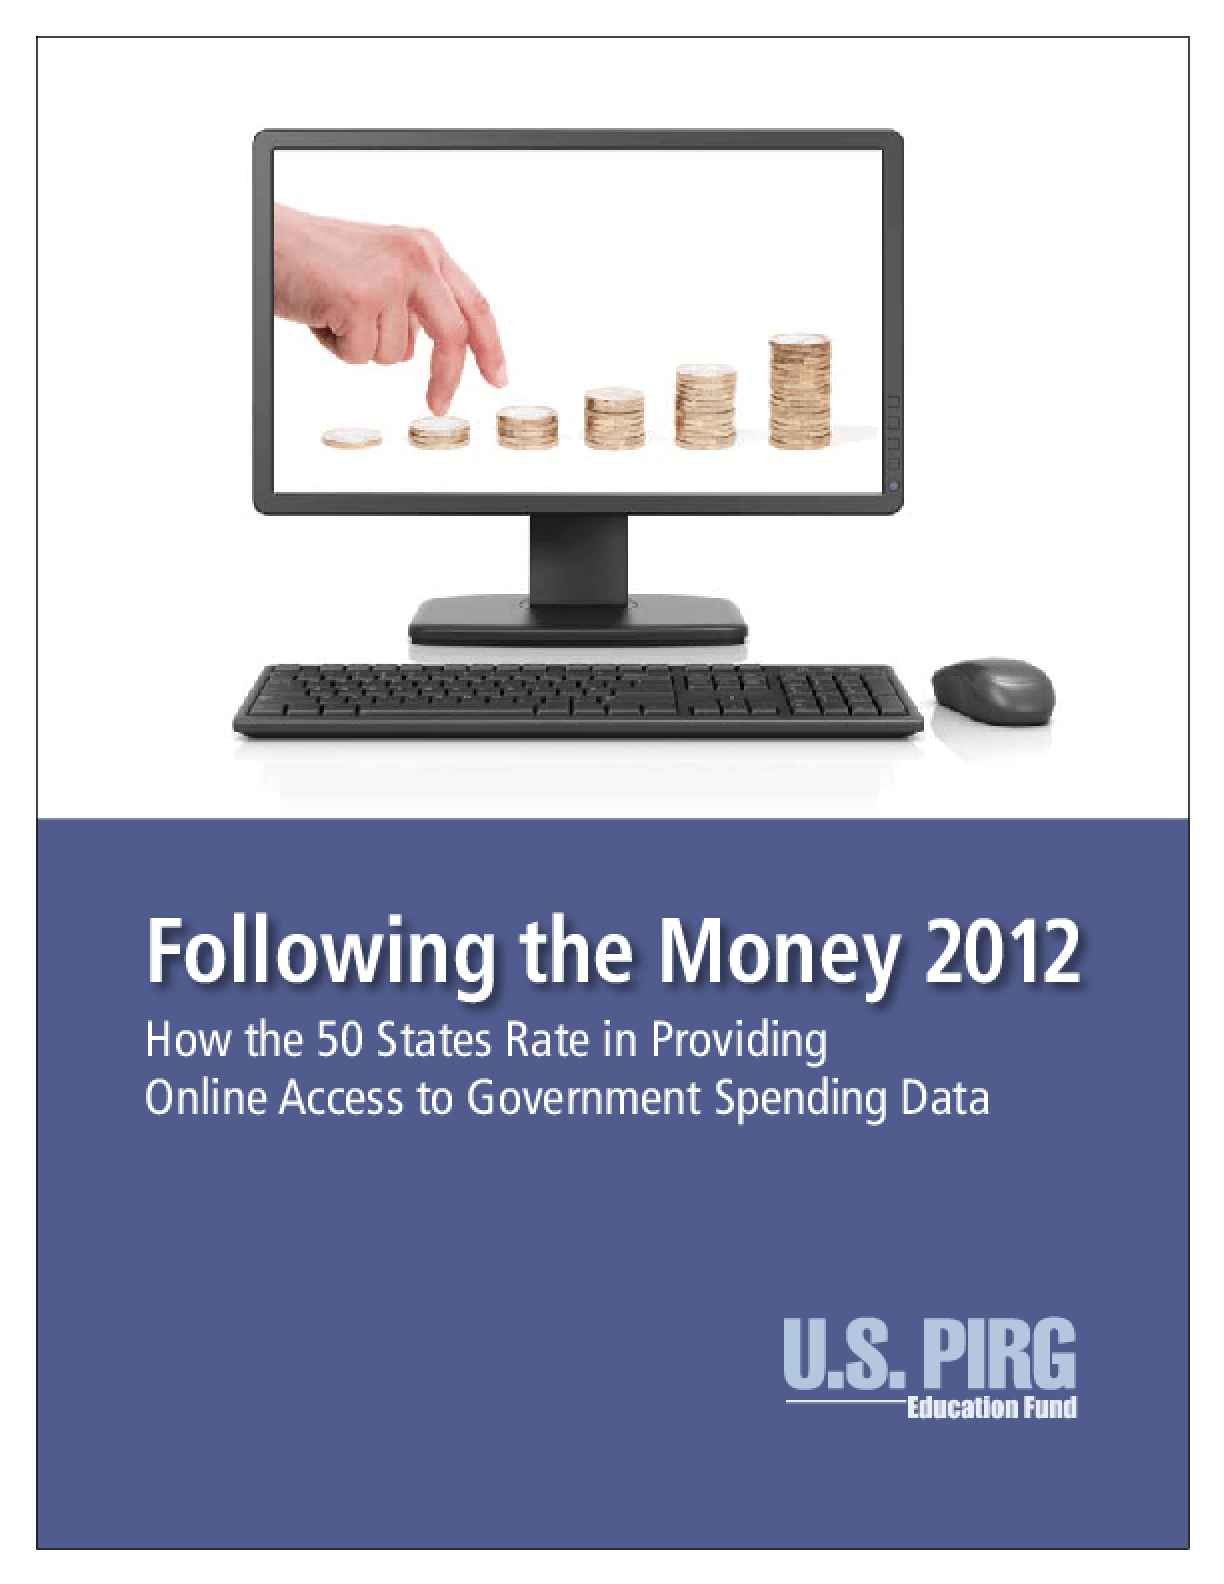 Following the Money 2012: How the 50 States Rate in Providing Online Access to Government Spending Data